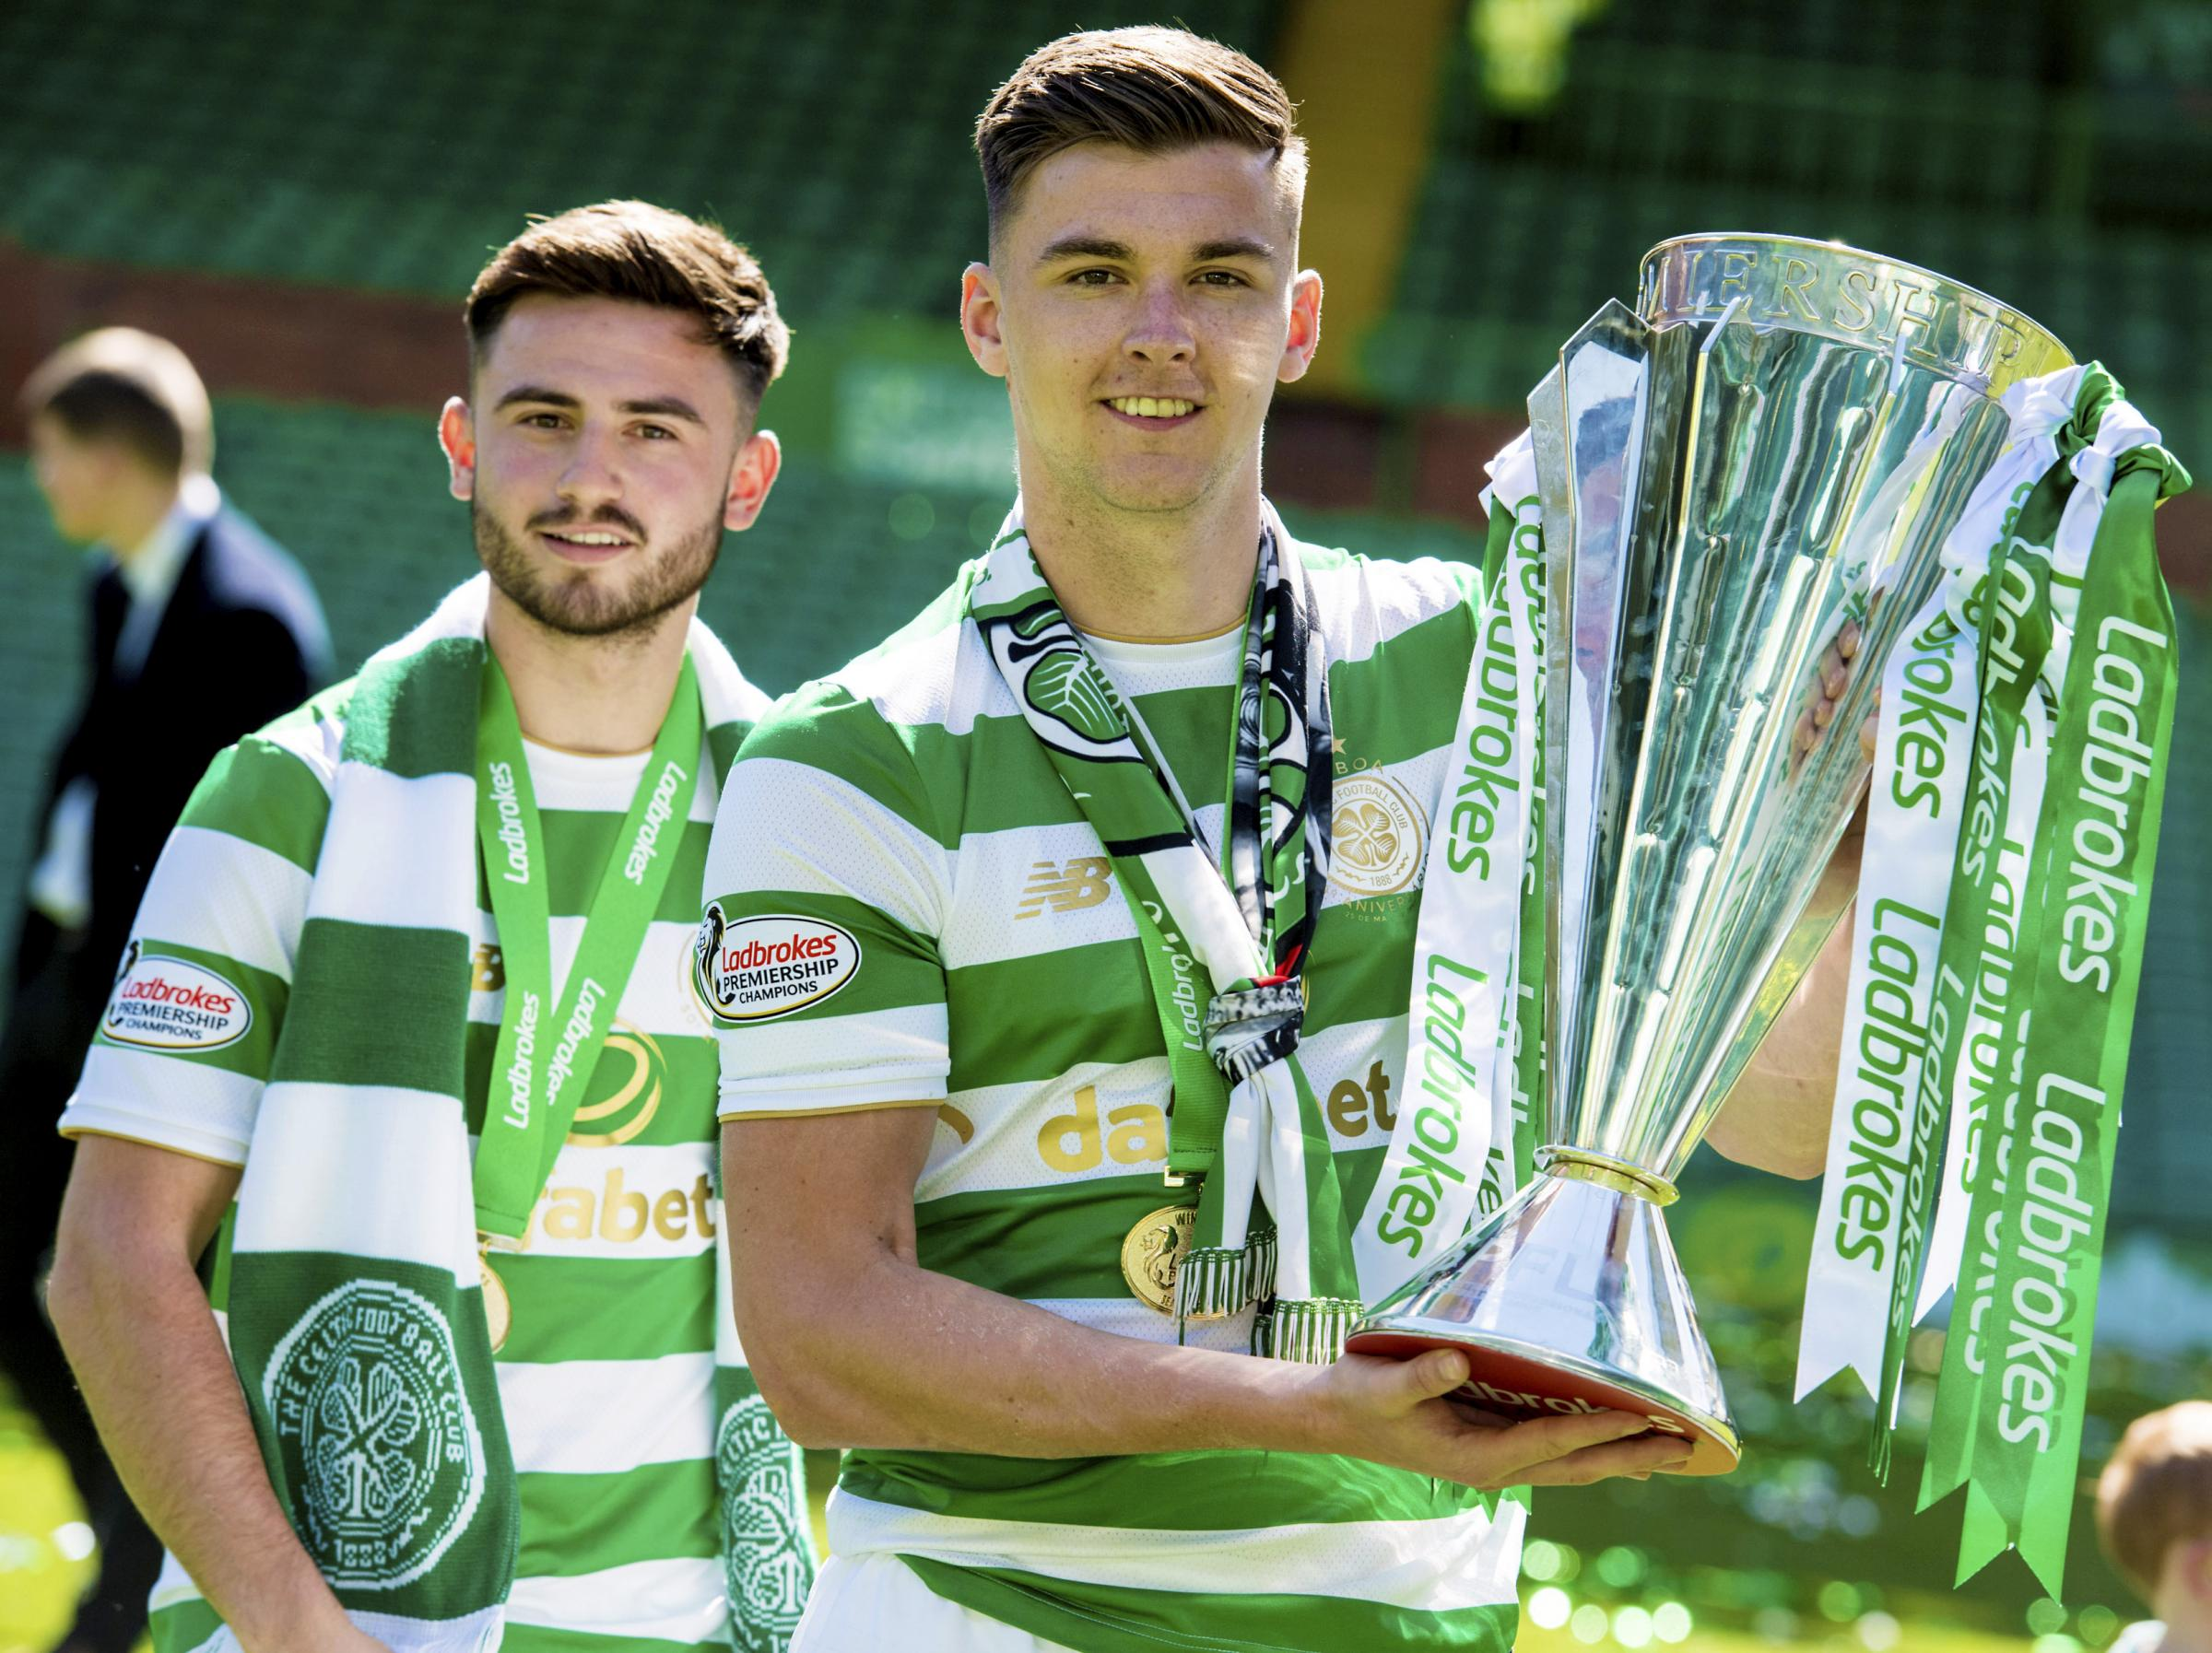 Celtic left back Kieran Tierney celebrates with the Ladbrokes Premiership trophy with team mate Patrick Roberts.